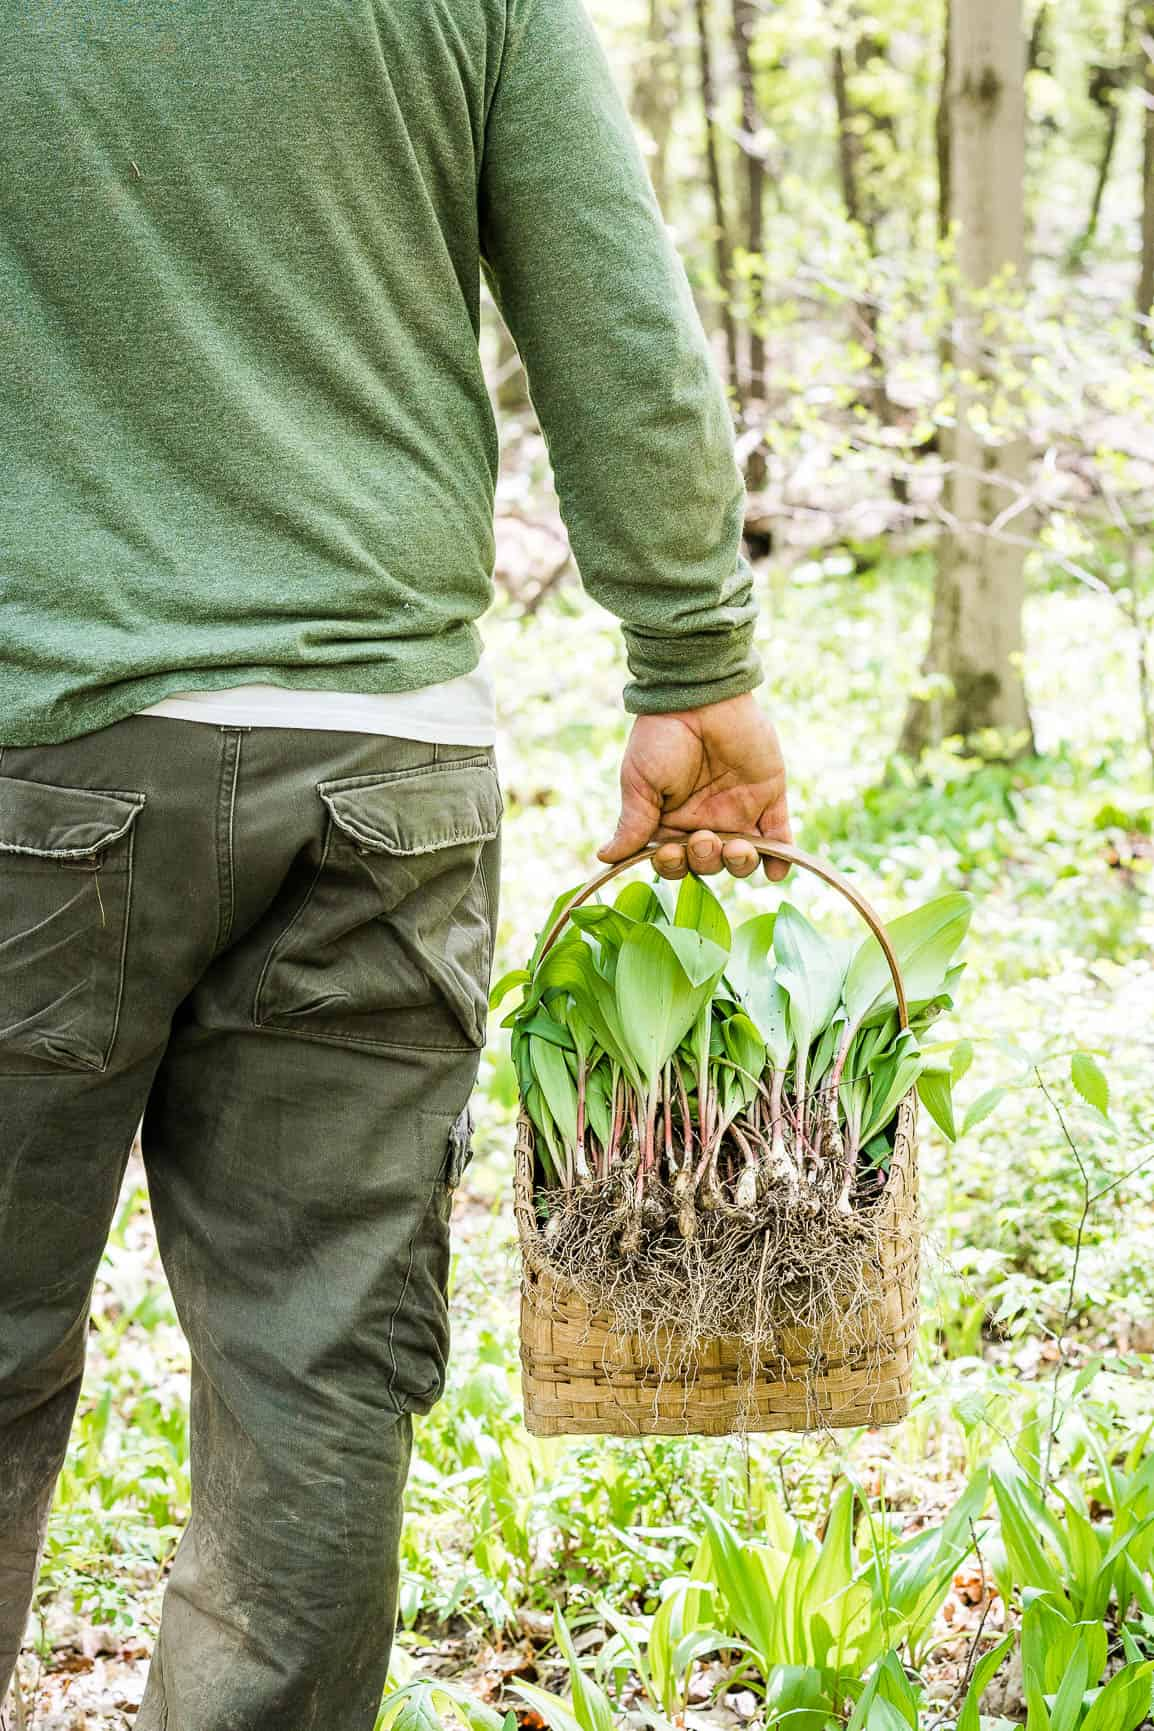 Man holding a basket of freshly dug wild leeks Ramps